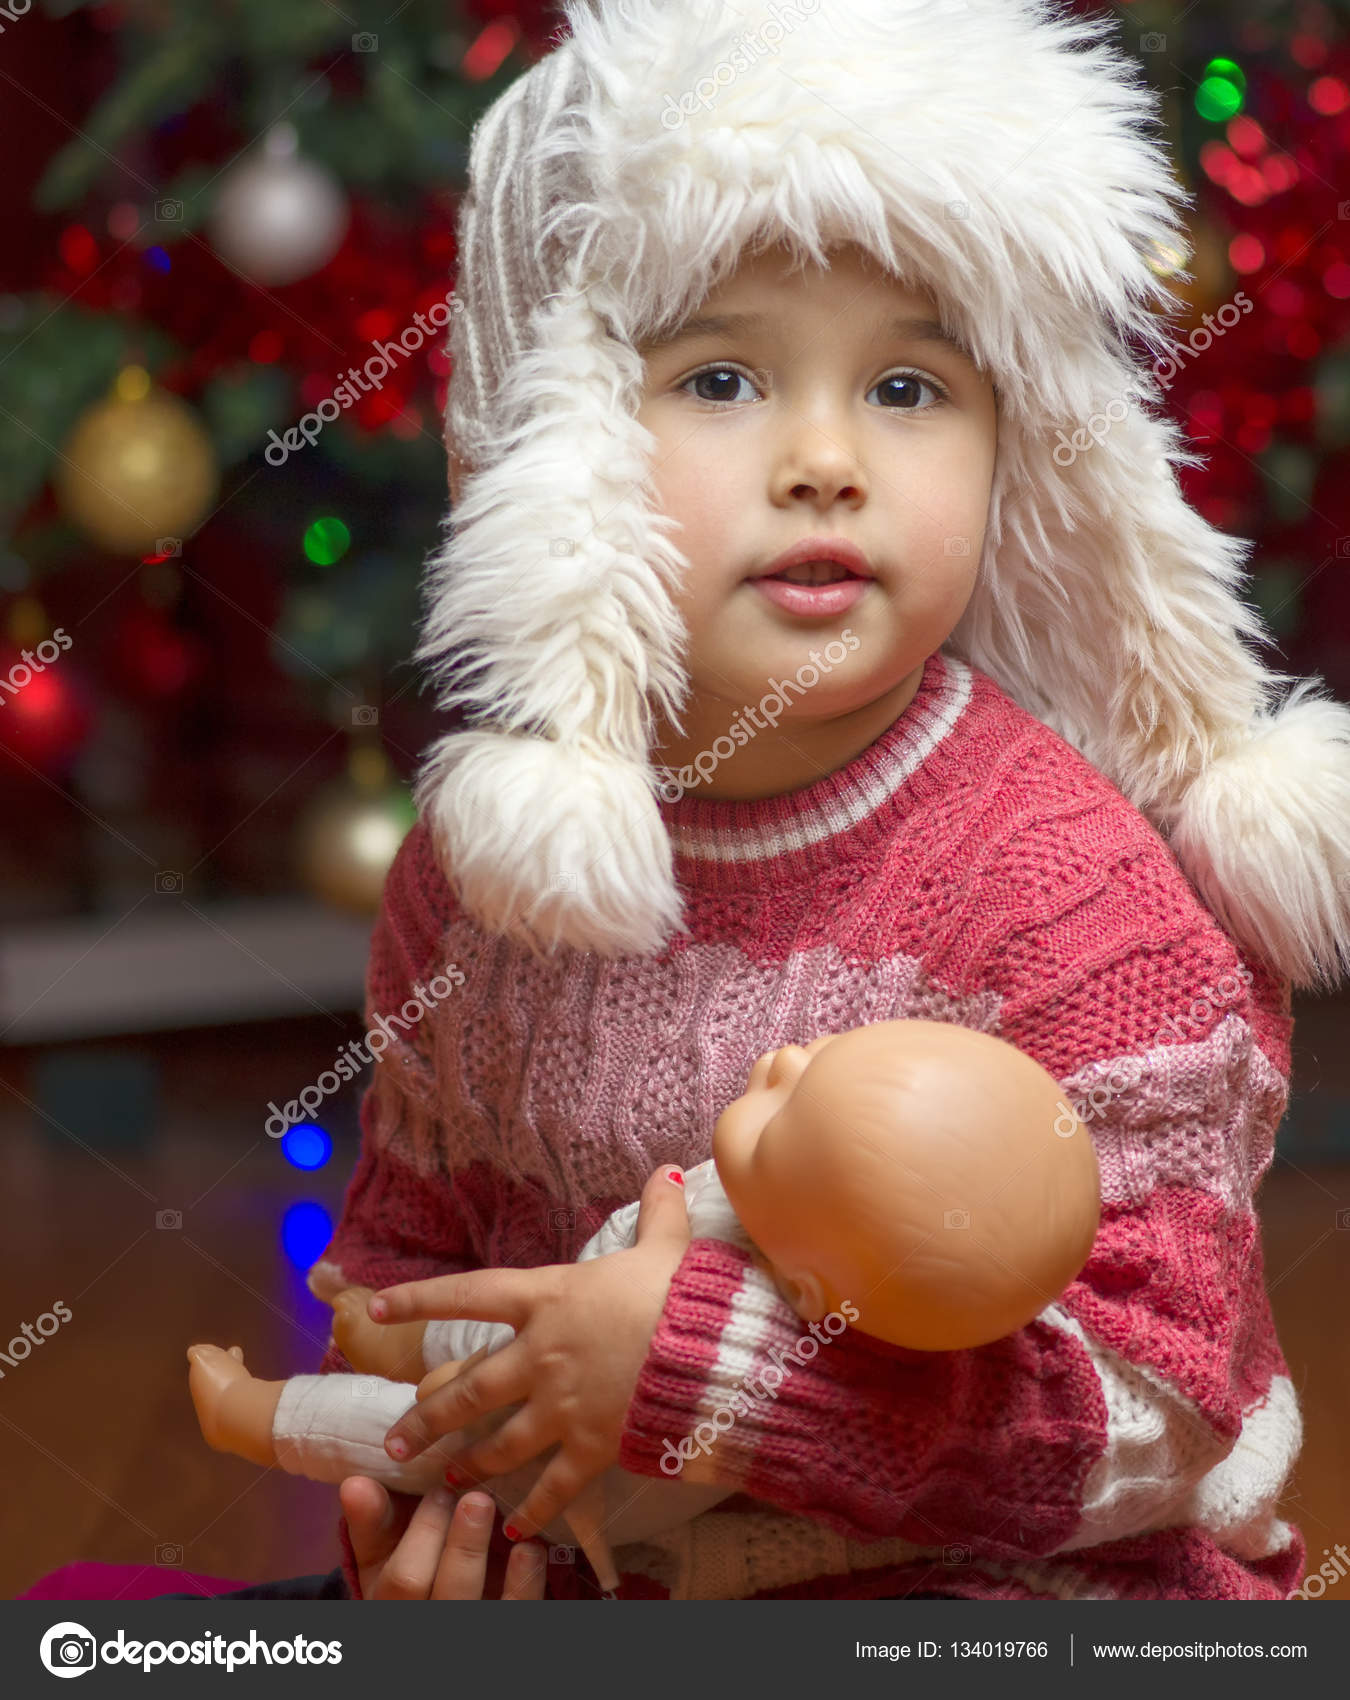 Girl with a favorite toy doll with Christmas lights background